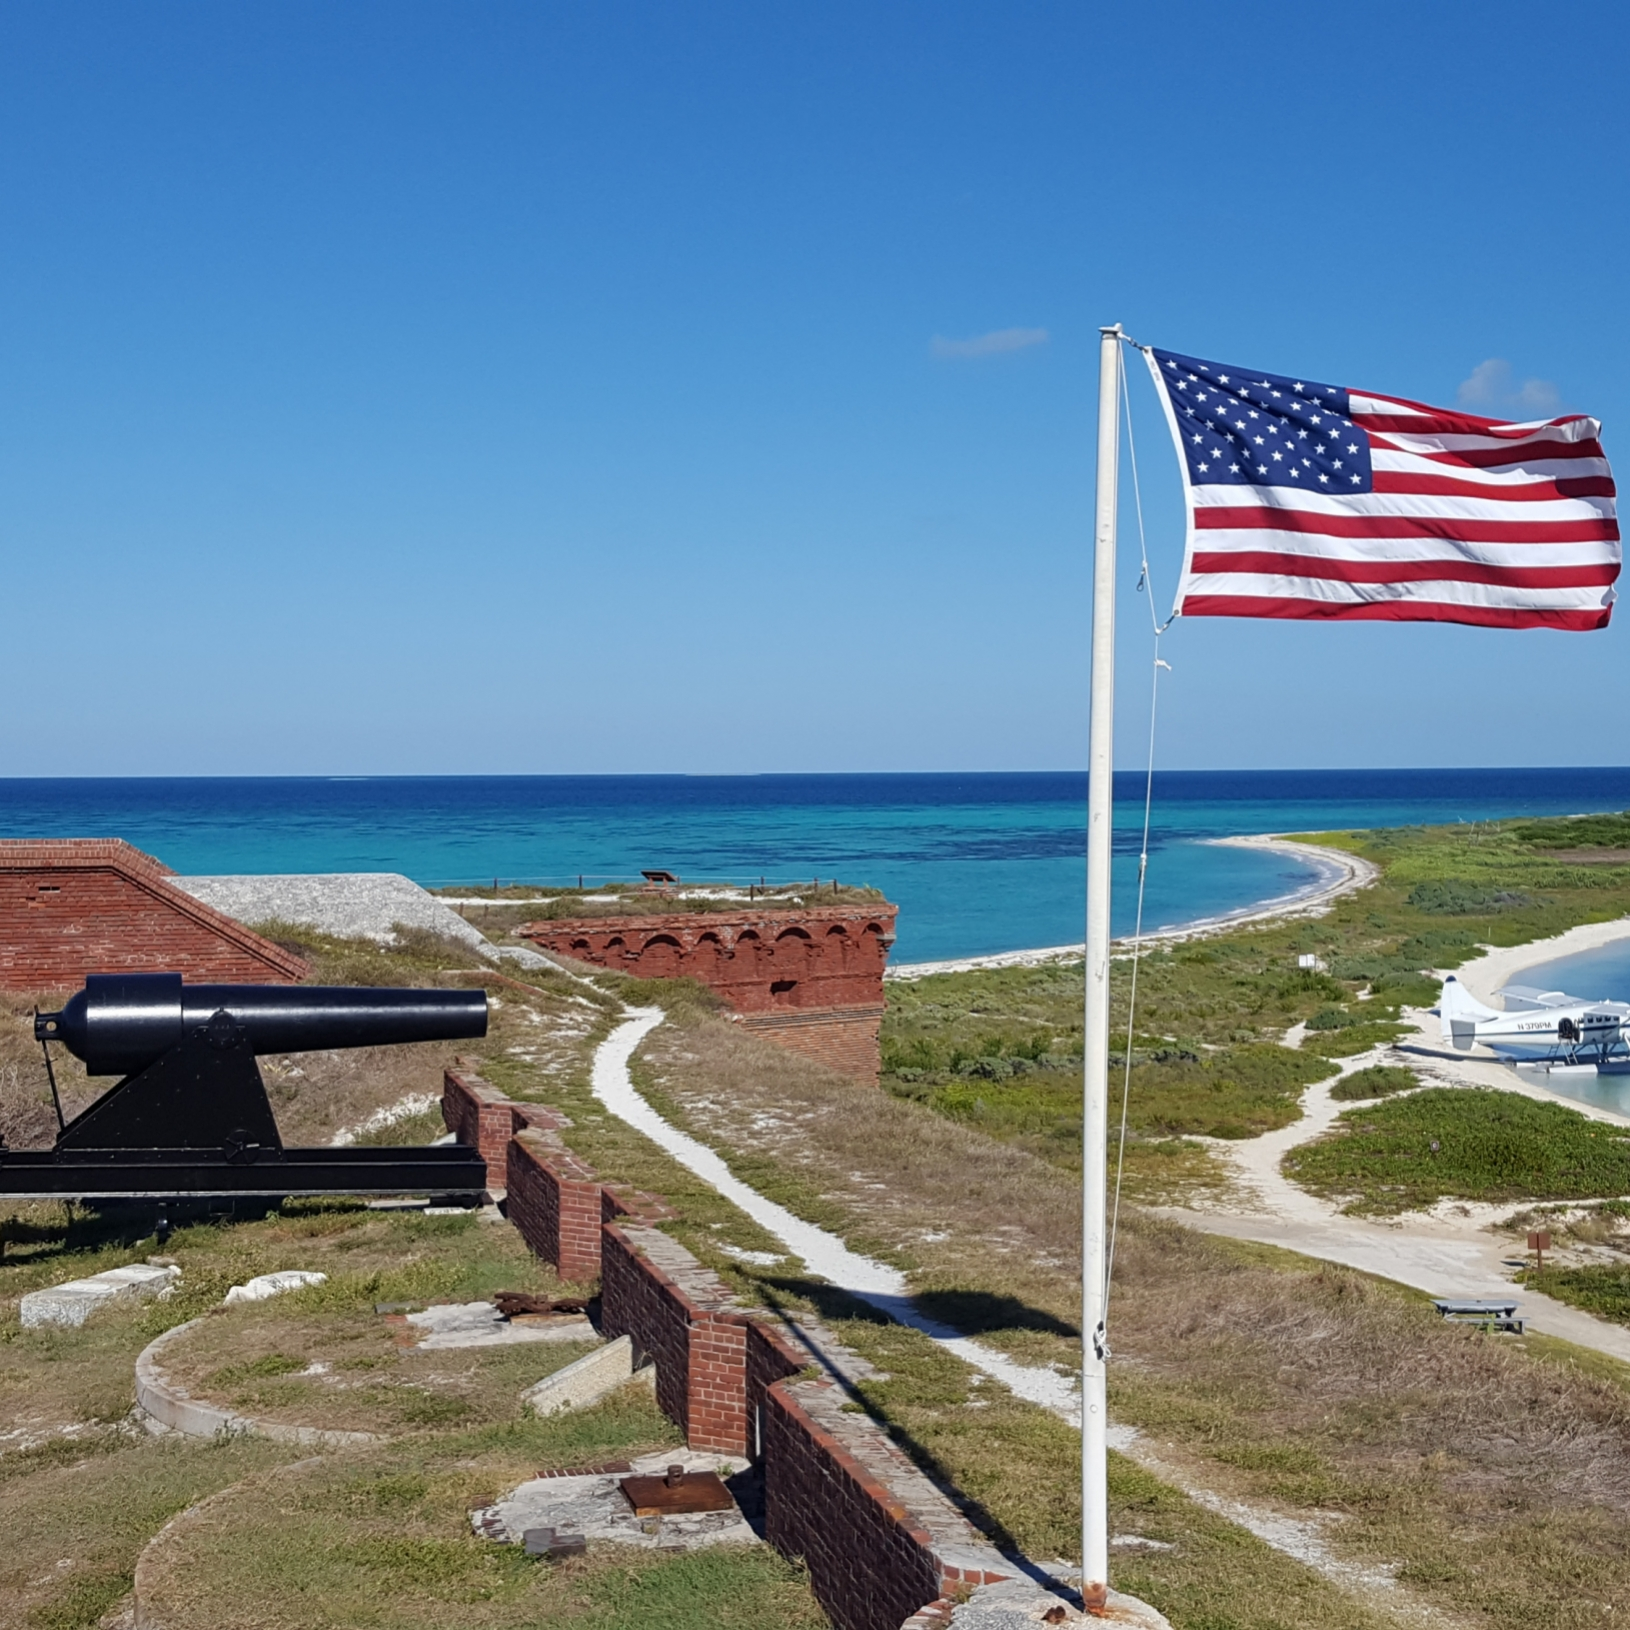 Greg P. at Dry Tortugas National Park